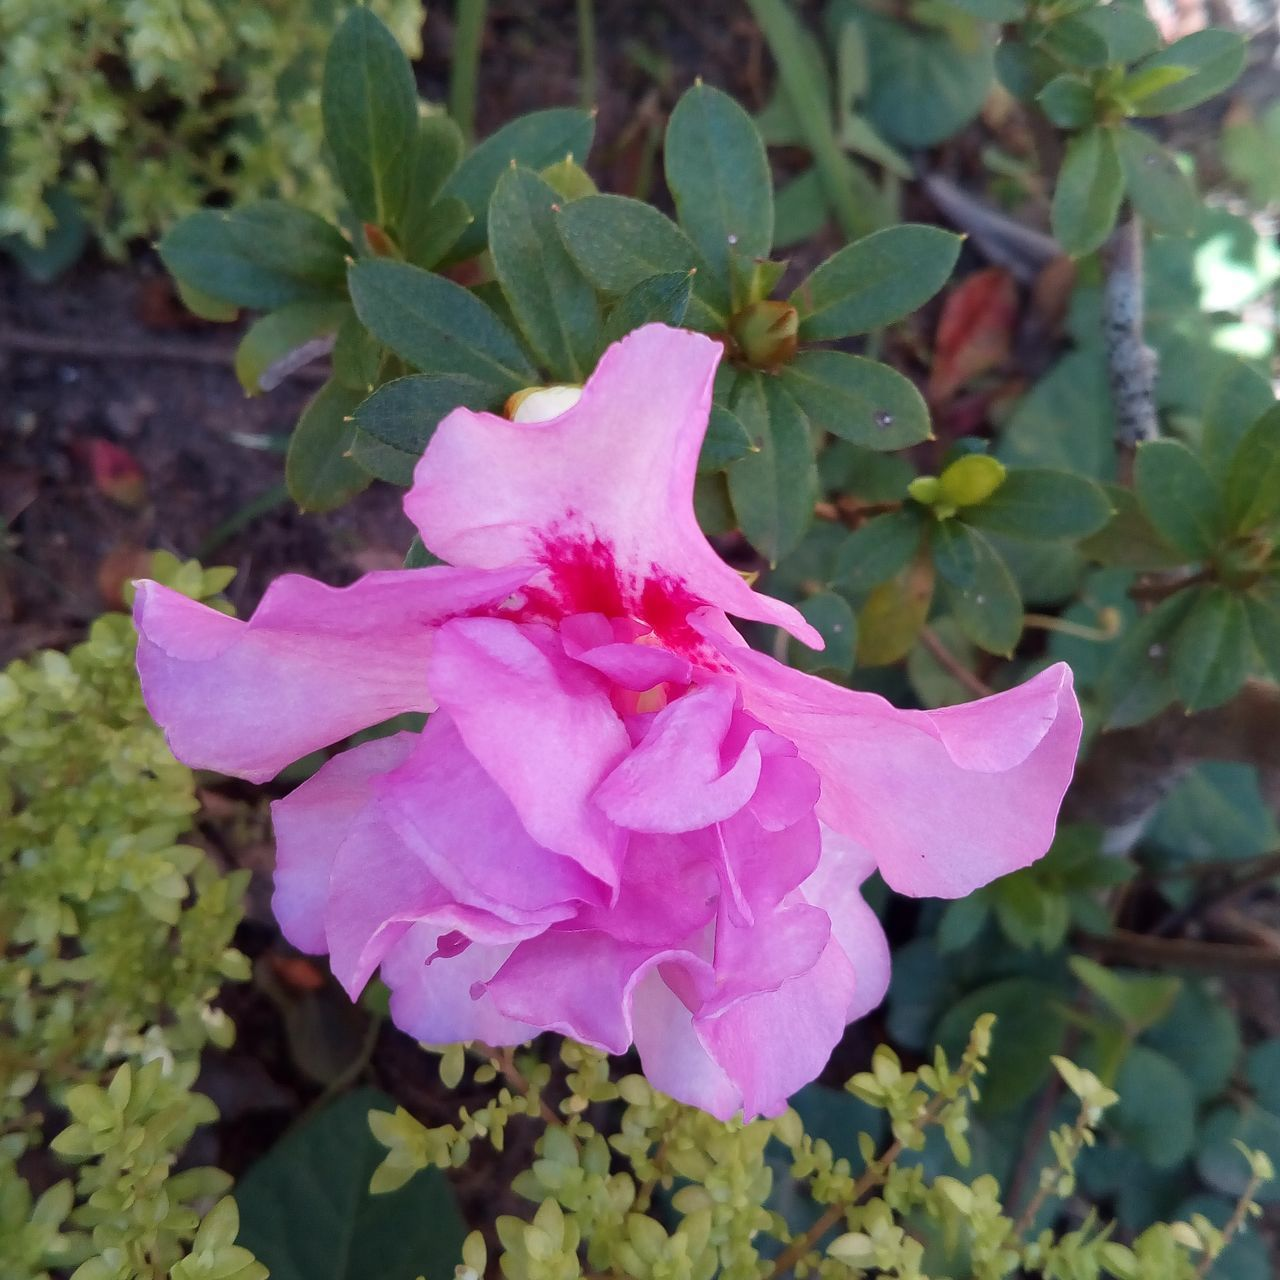 flower, petal, fragility, nature, beauty in nature, plant, pink color, growth, flower head, leaf, no people, outdoors, blooming, wild rose, day, freshness, rose - flower, close-up, periwinkle